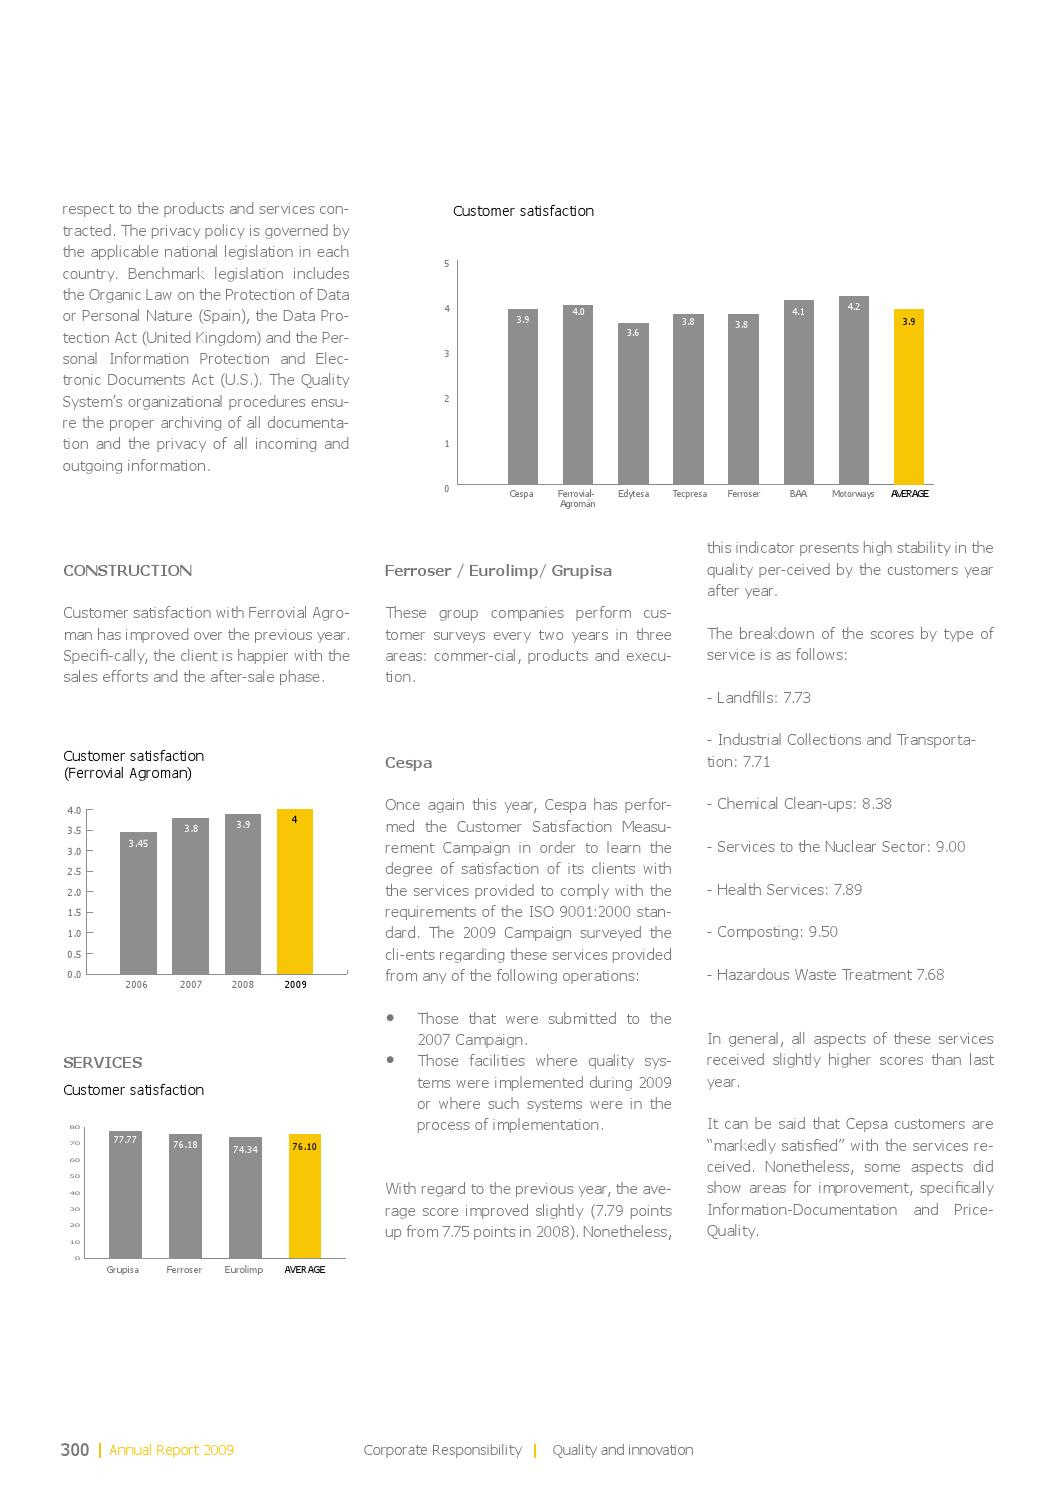 Ferrovial: Annual report 2009 by Ferrovial - issuu